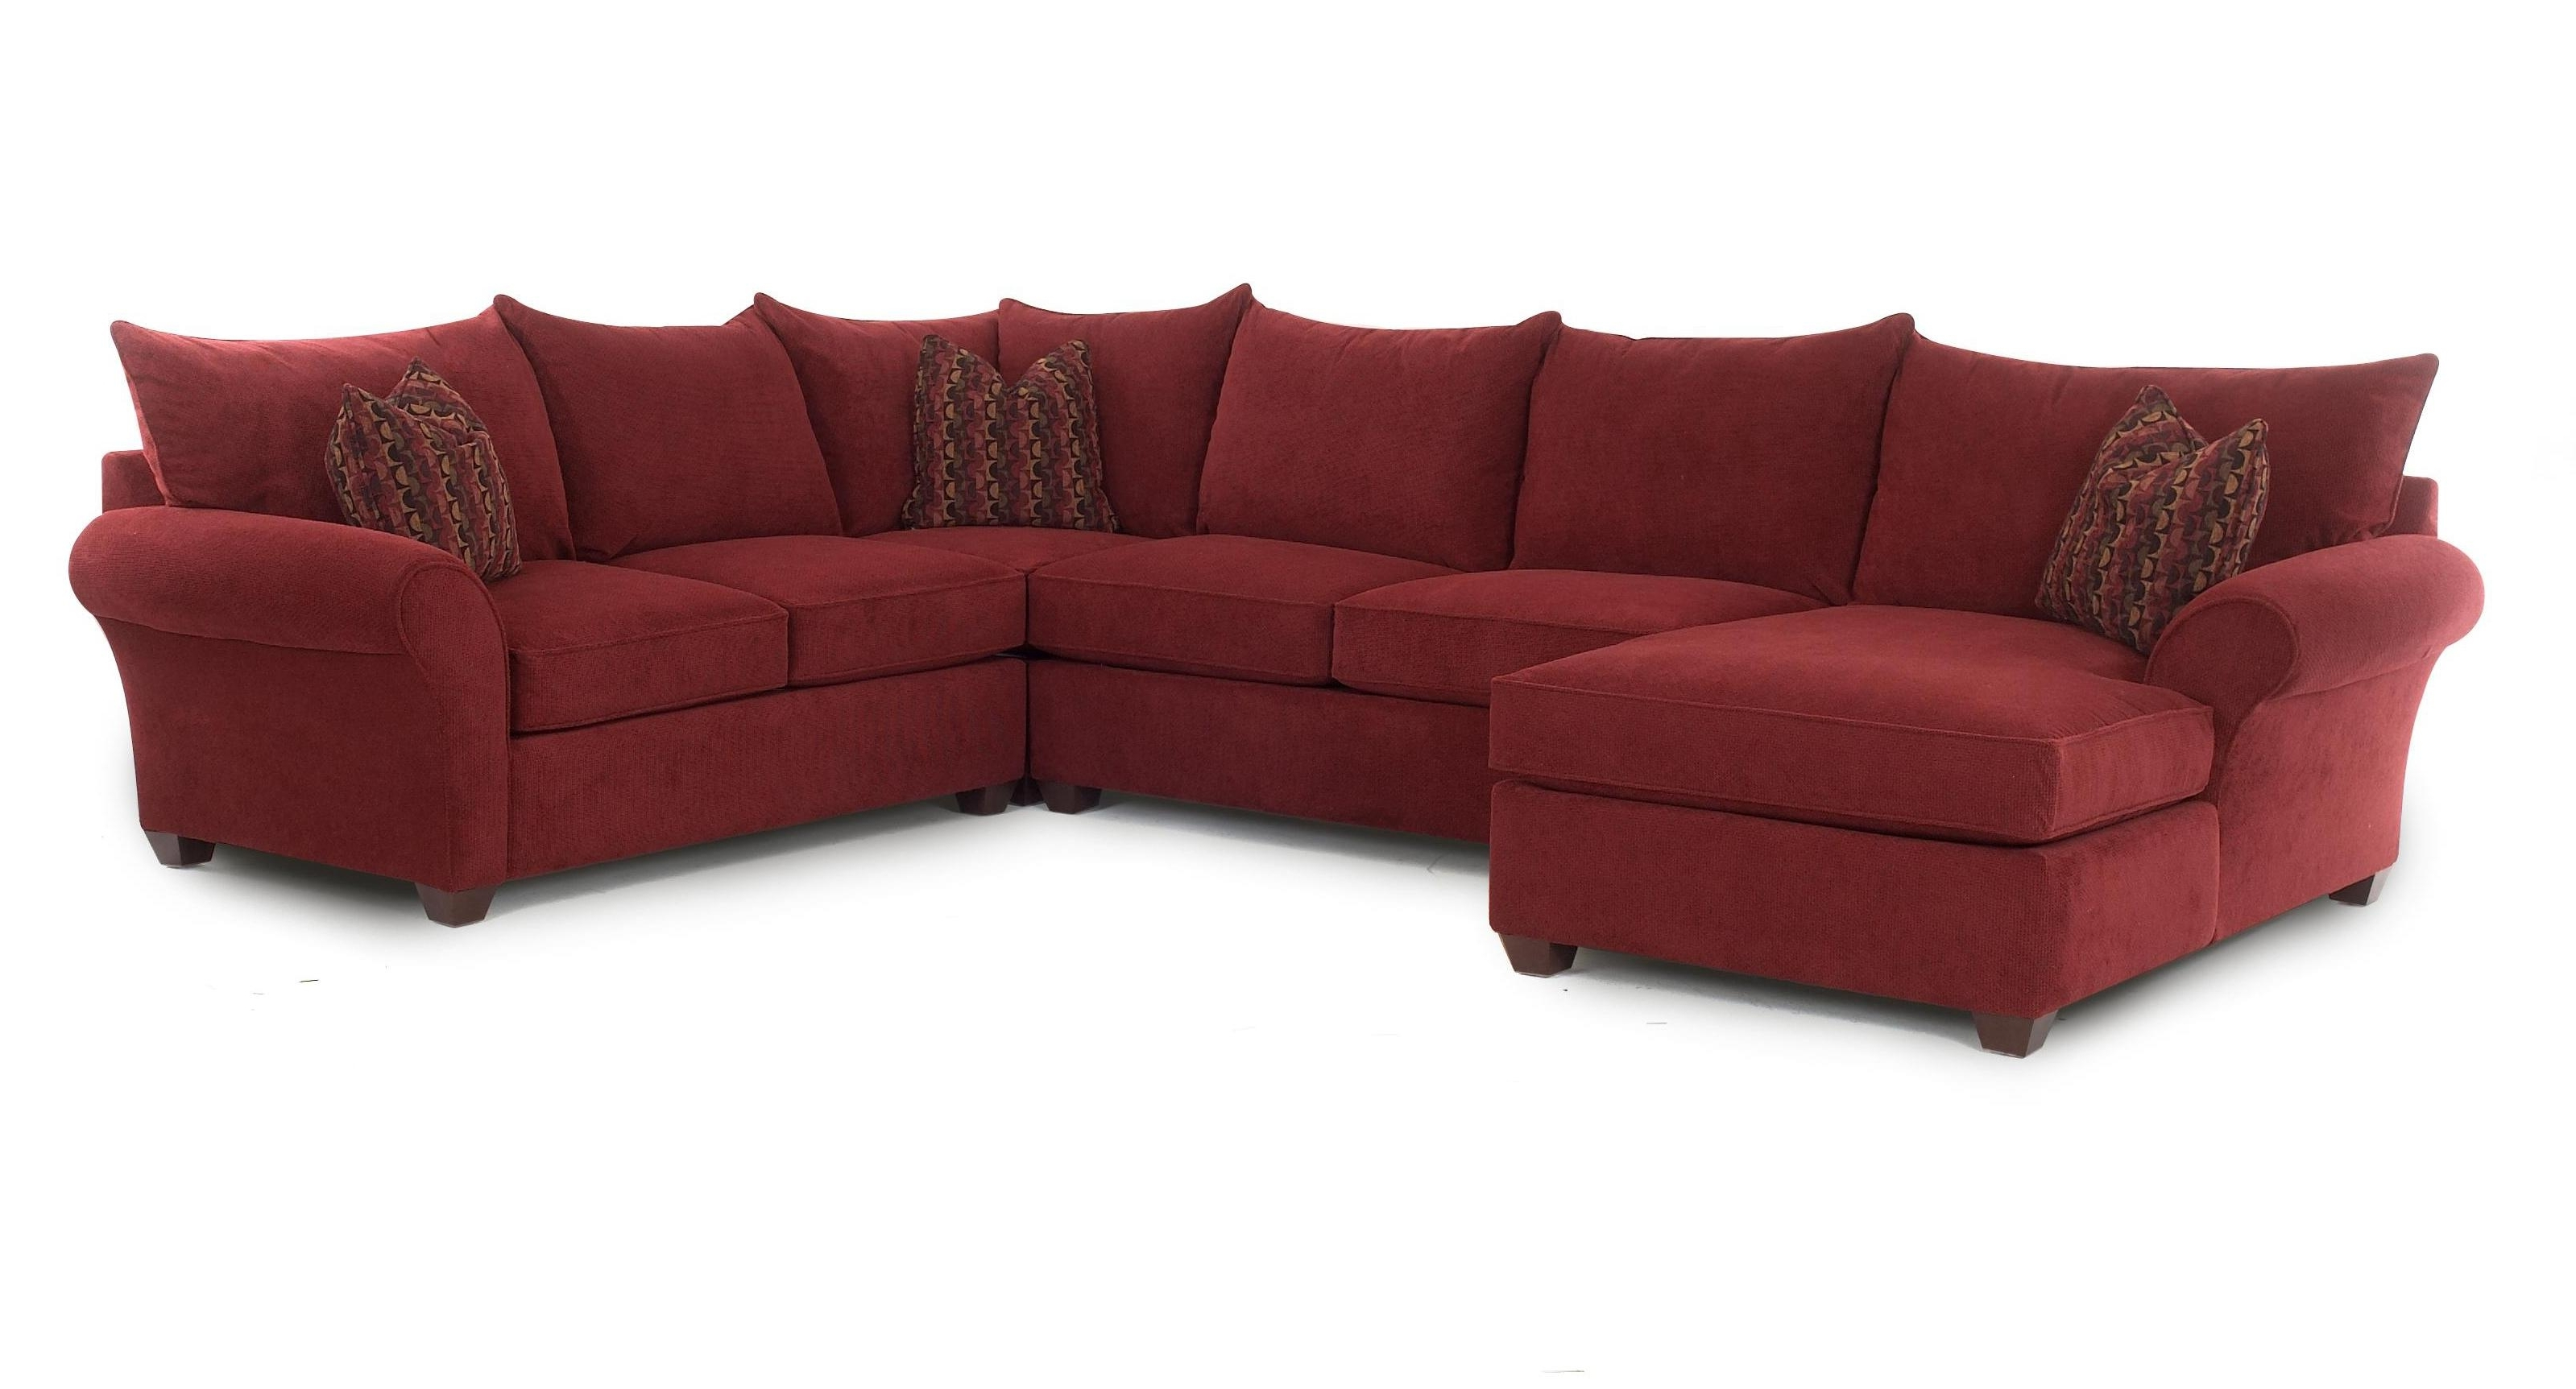 Sectional Sofa With Chaiseklaussner (View 11 of 15)